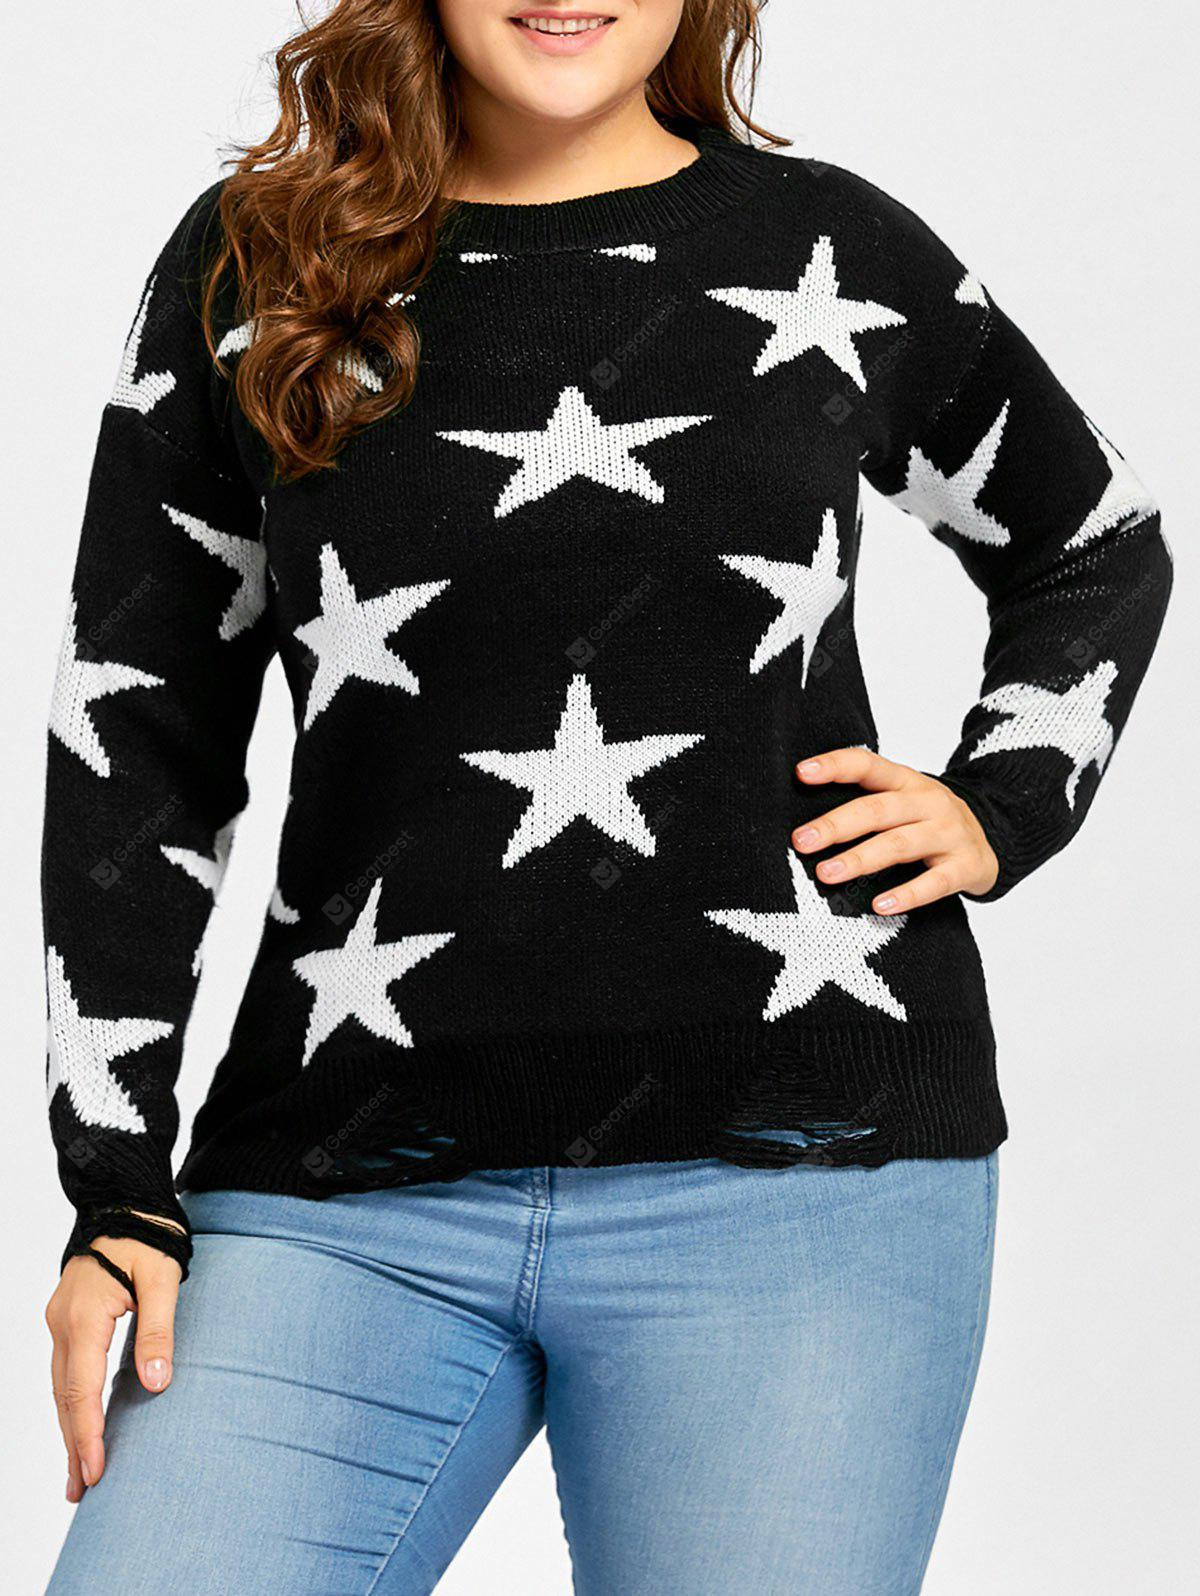 Star Jacquard Destroyed Plus Size Sweater